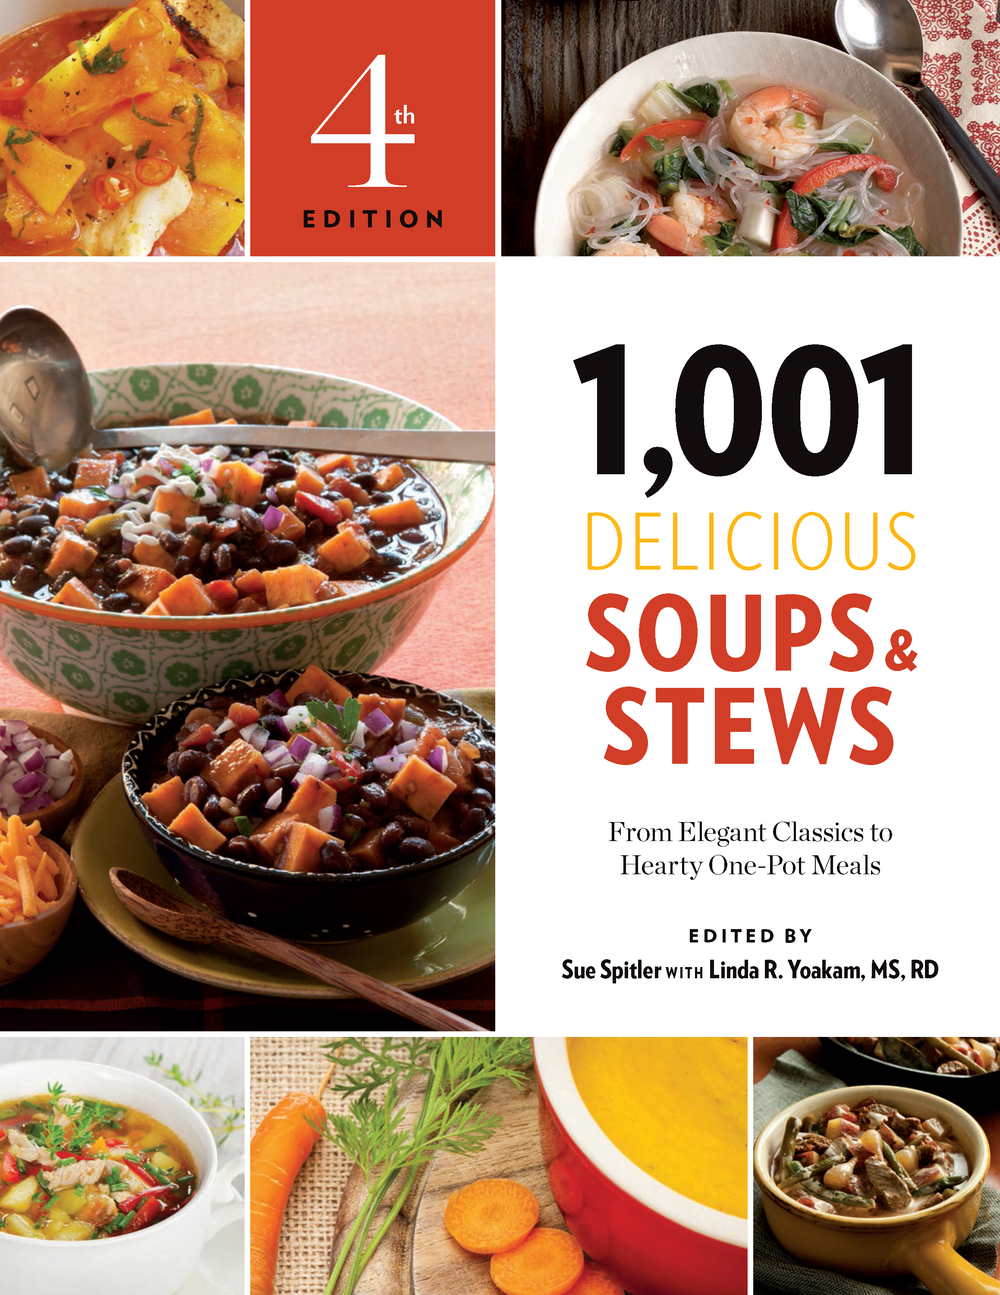 1,001 Delicious Soups & Stews_Page_01.png